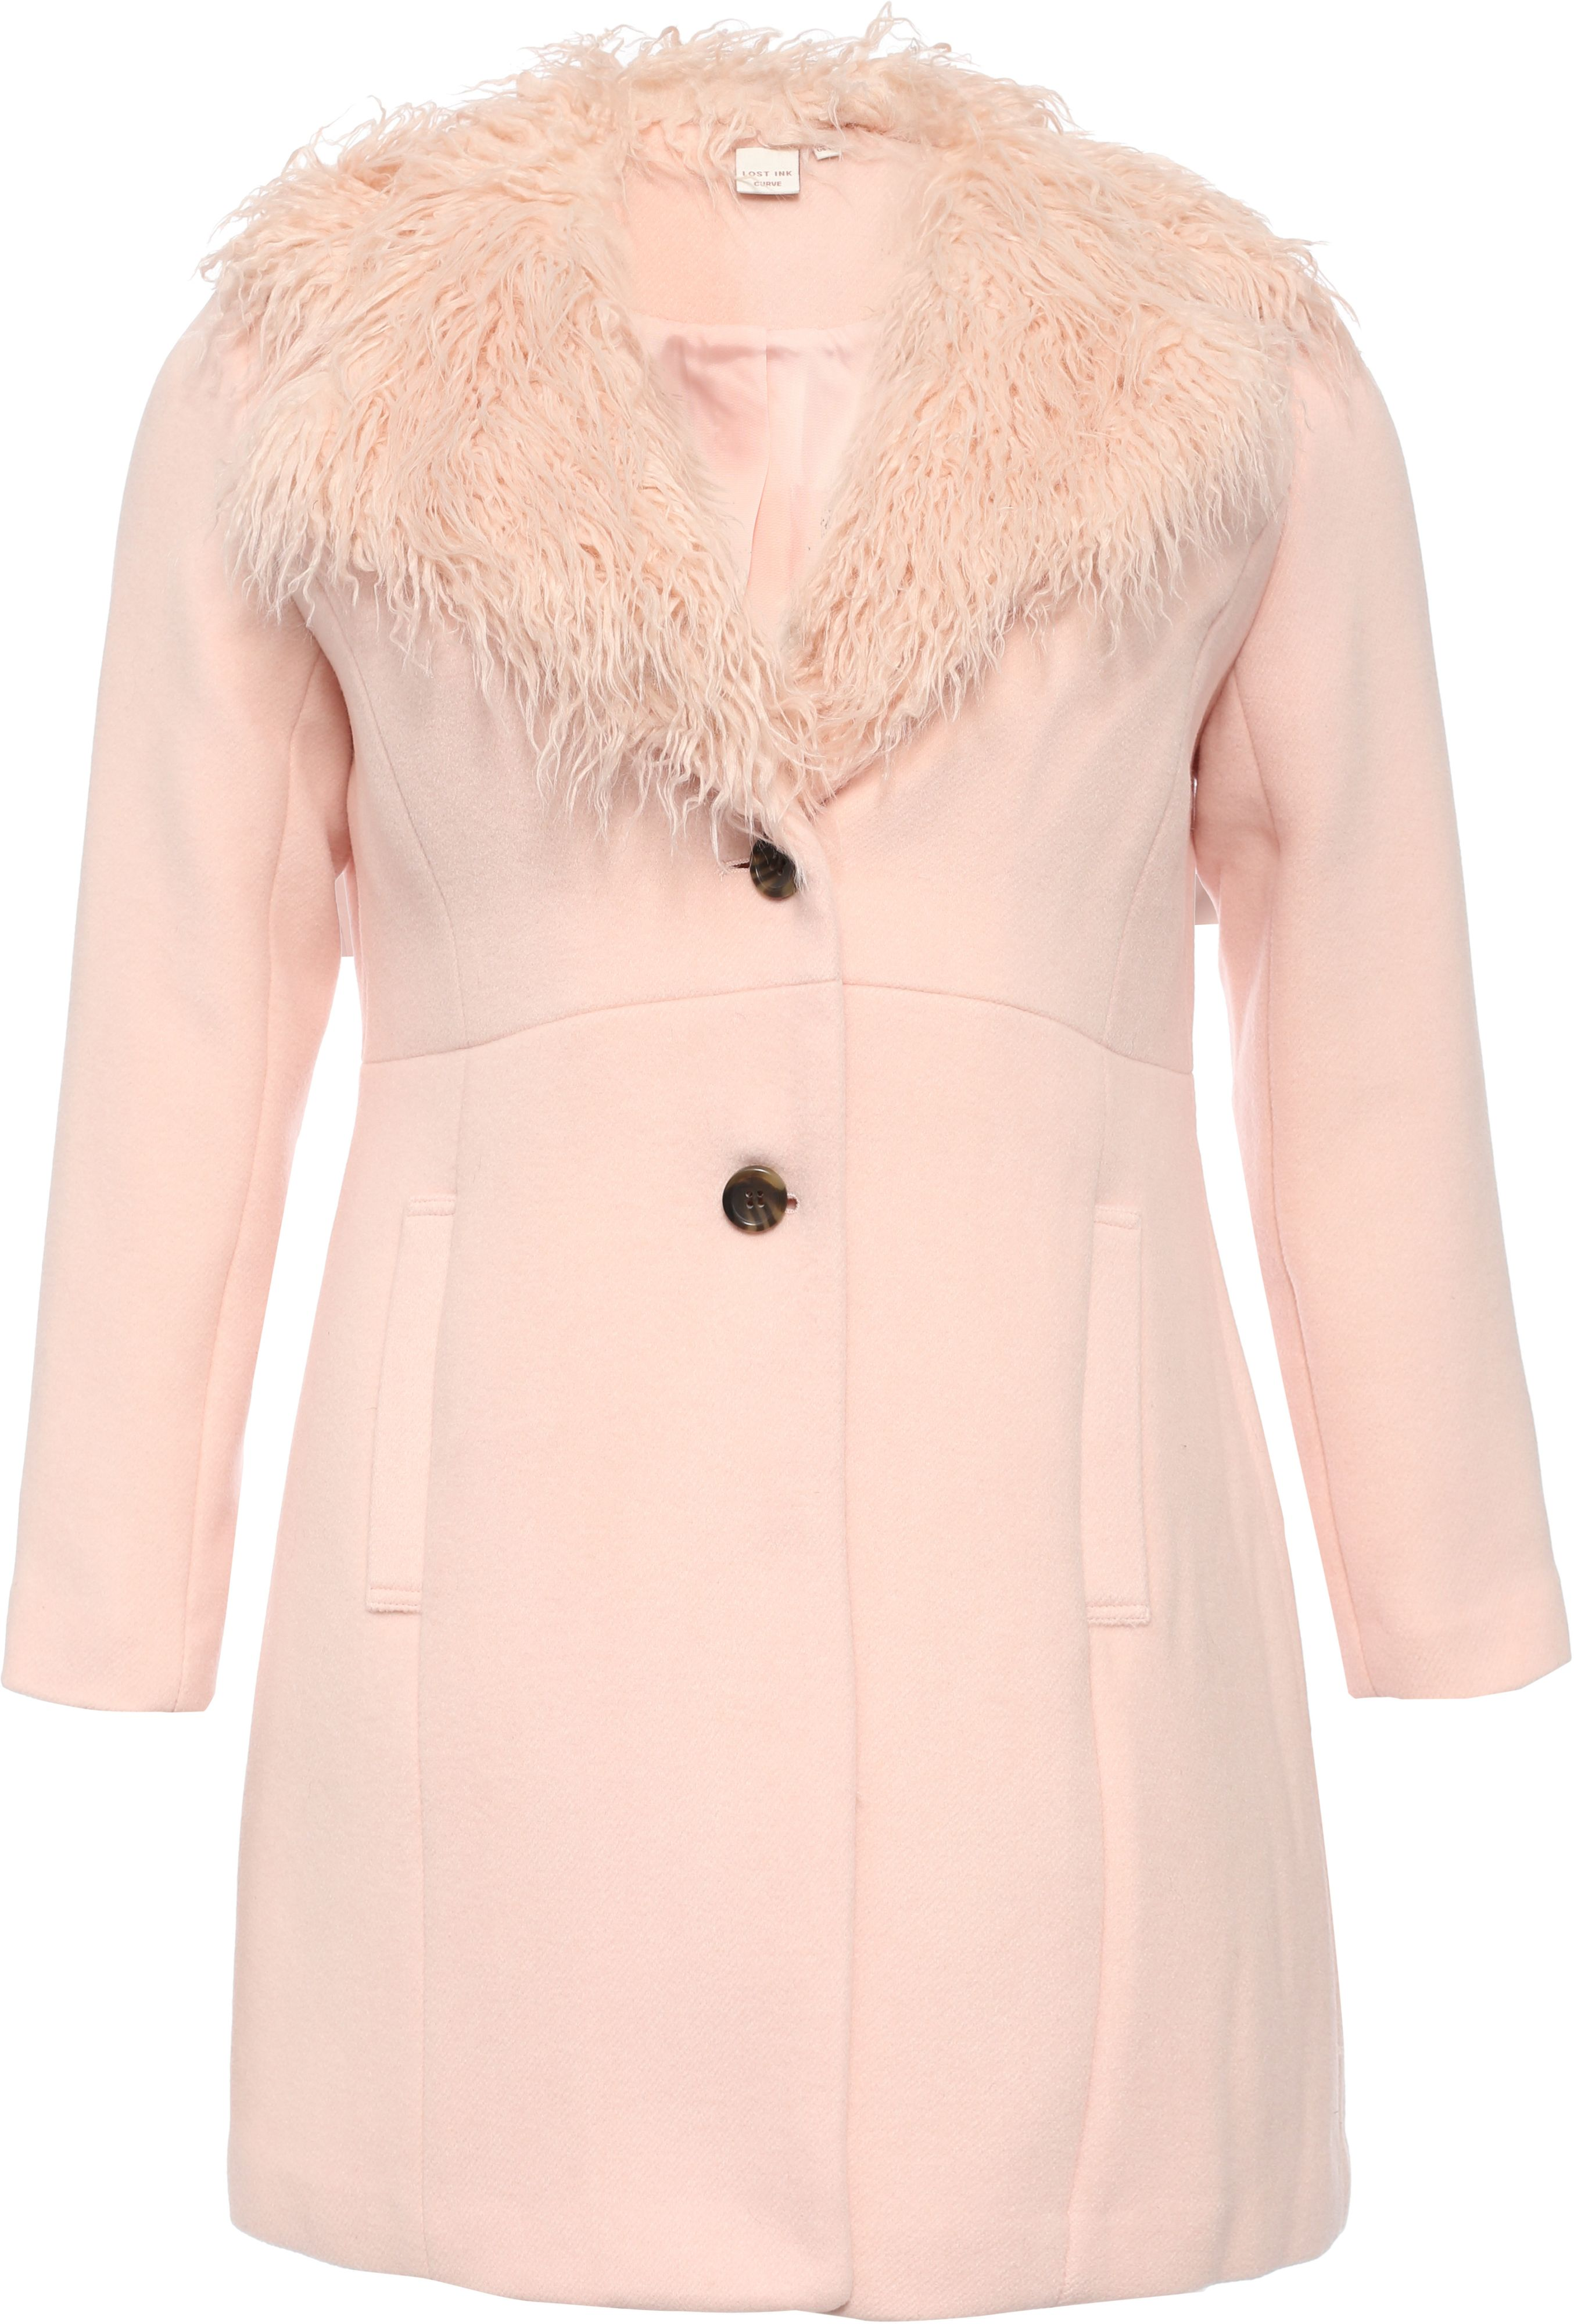 Lost Ink Curve Coat With Fur Collar, Pink